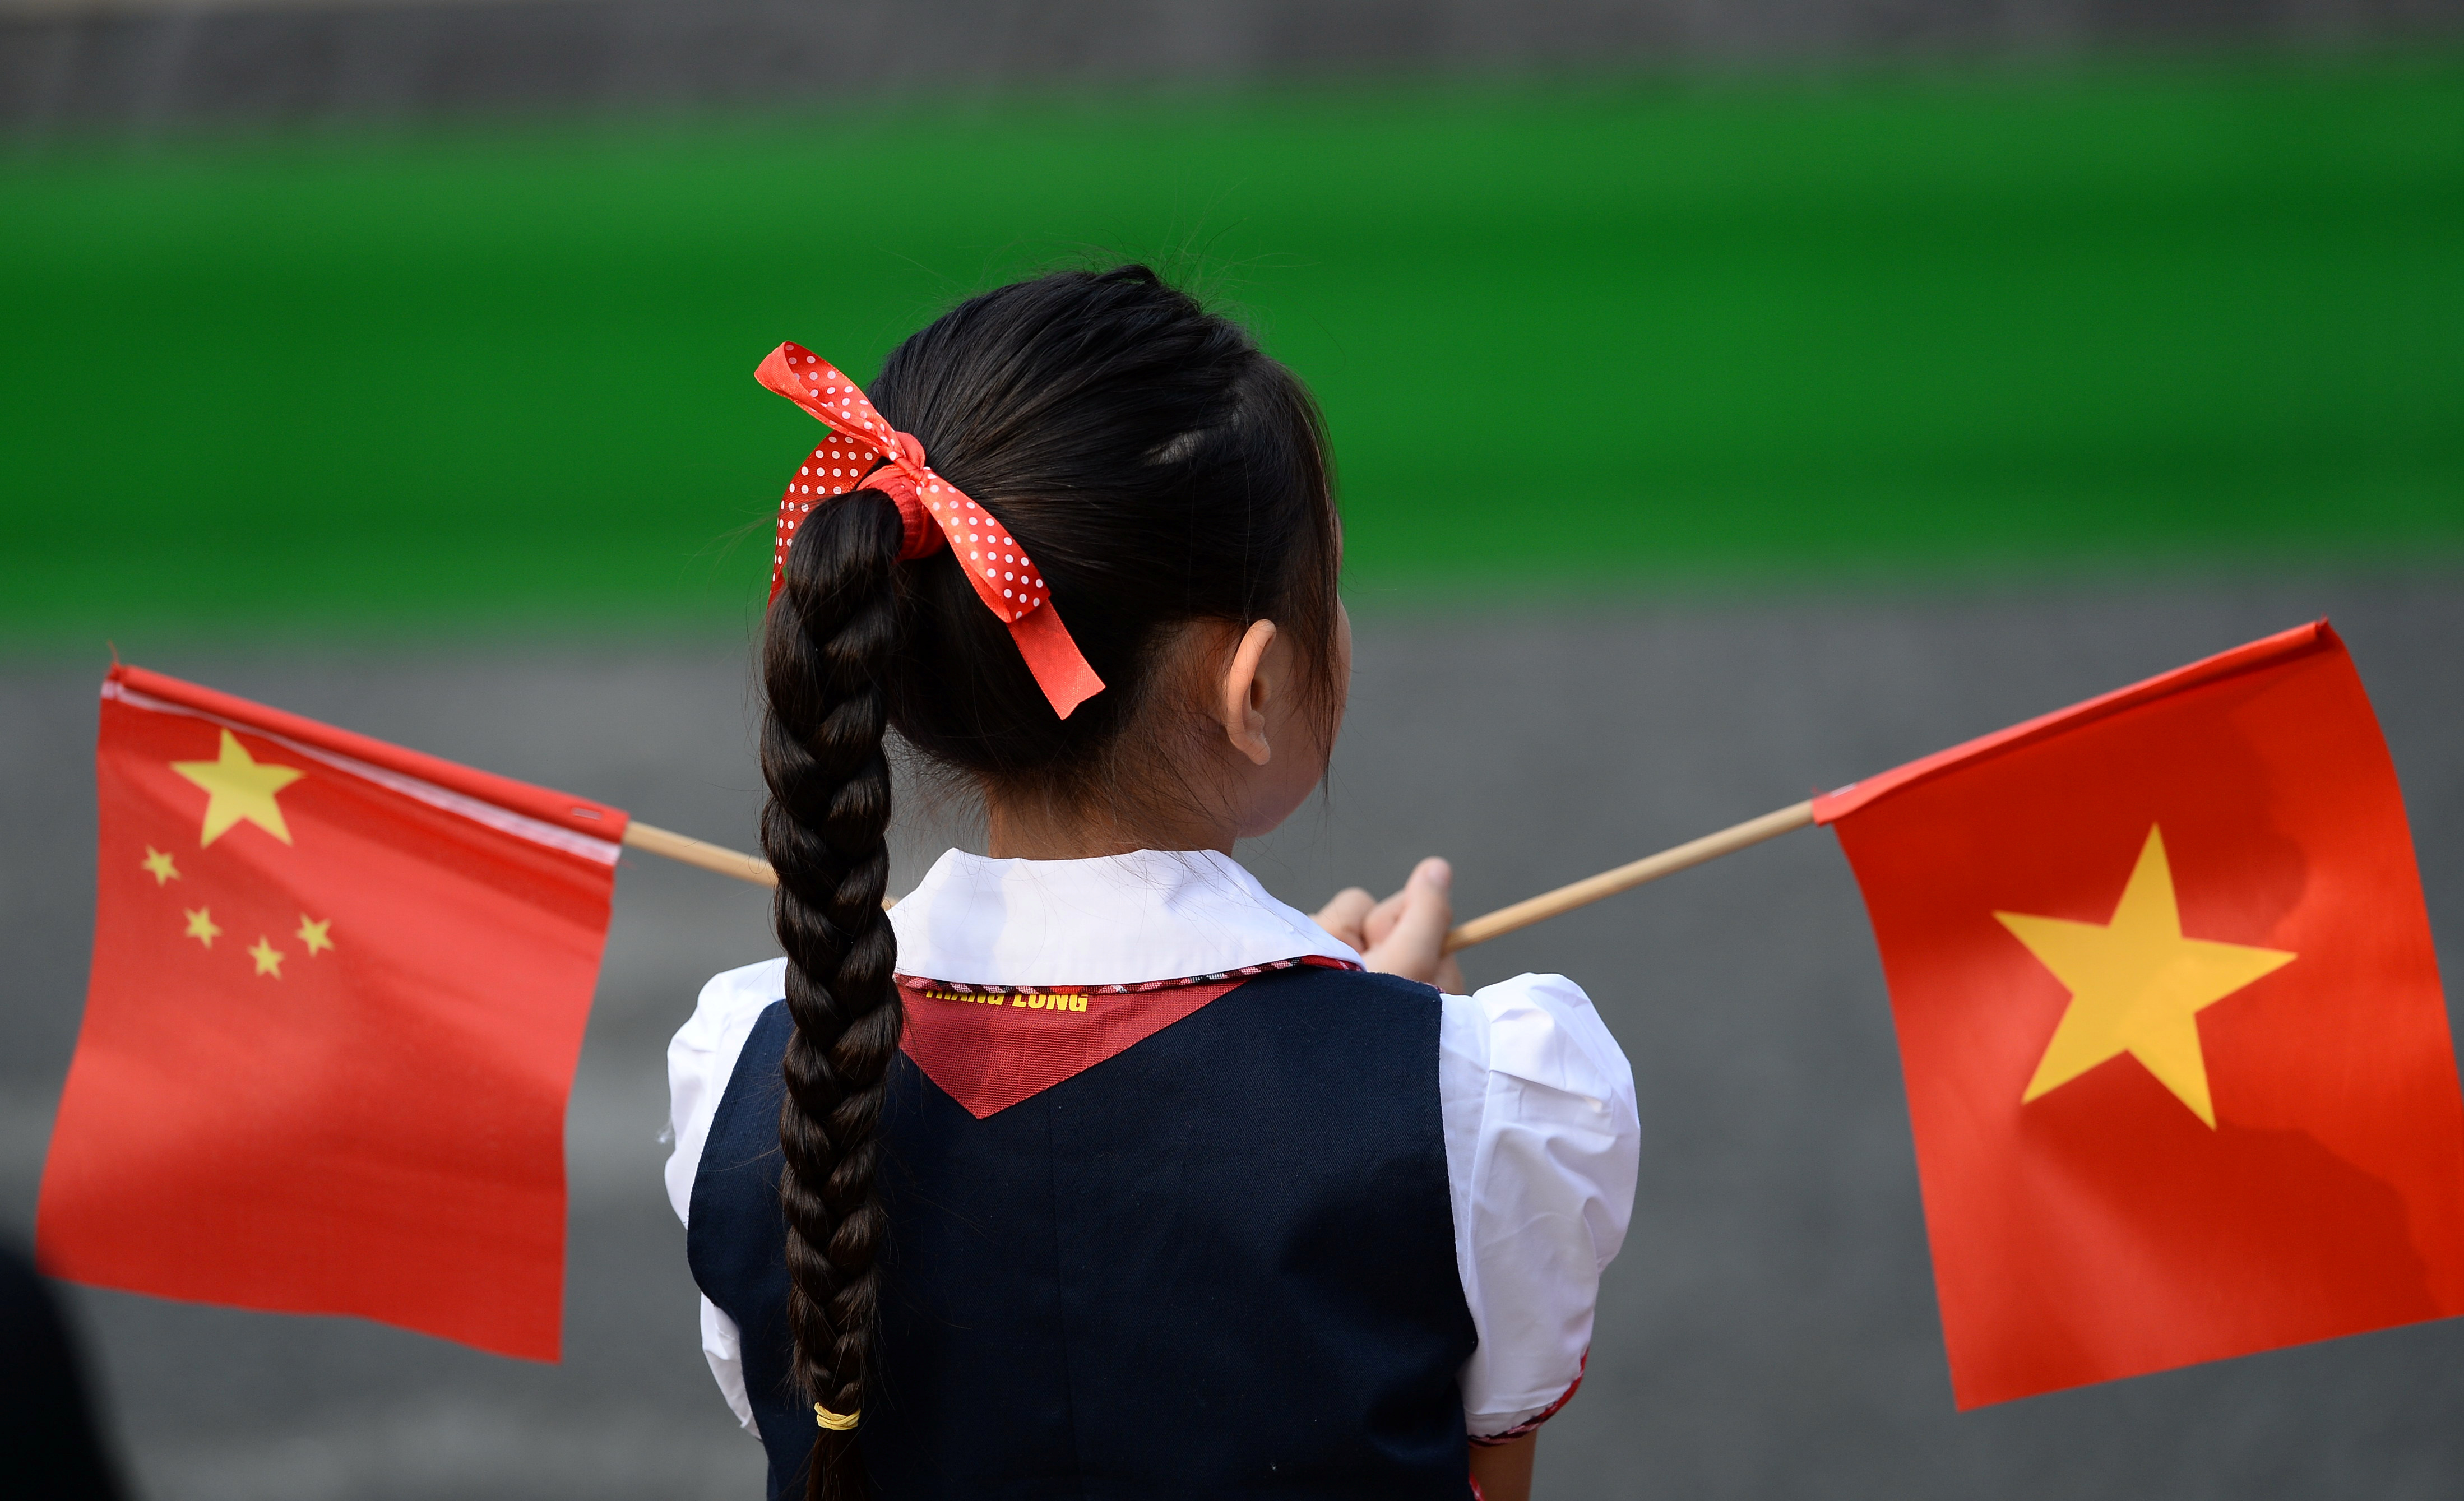 A Vietnamese pupil holds Vietnamese and Chinese flags before the welcoming ceremony at the Presidential Palace in Hanoi, Vietnam November 12, 2017. REUTERS/Hoang Dinh Nam/Pool